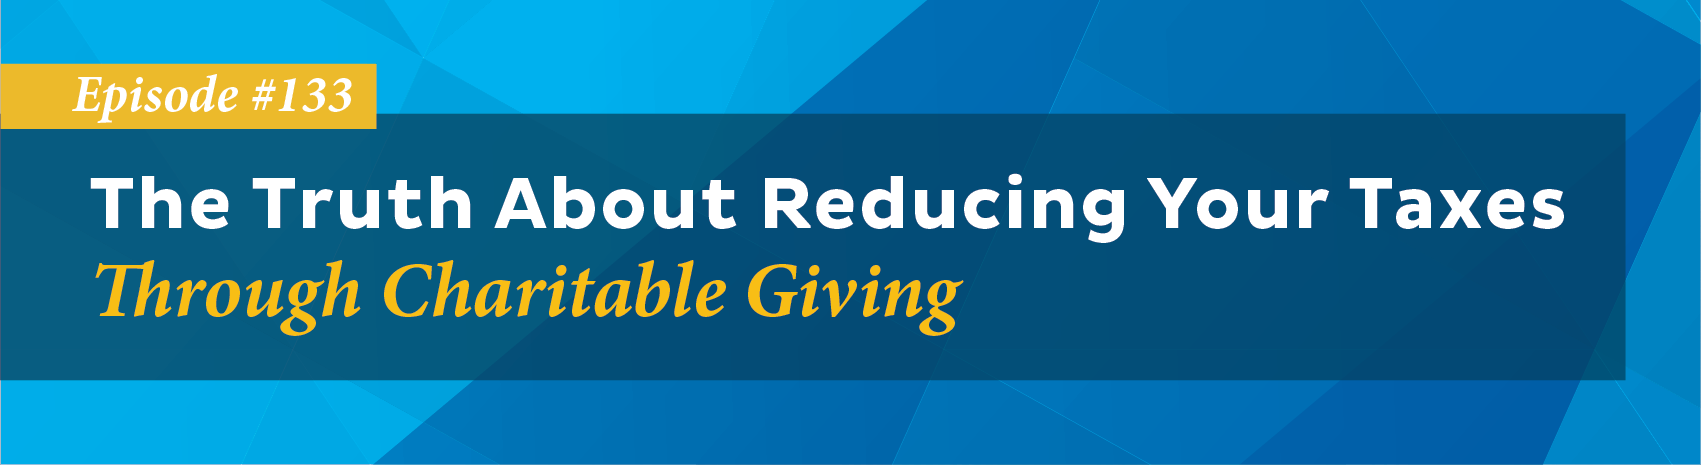 The Truth About Reducing Your Taxes Through Charitable Giving